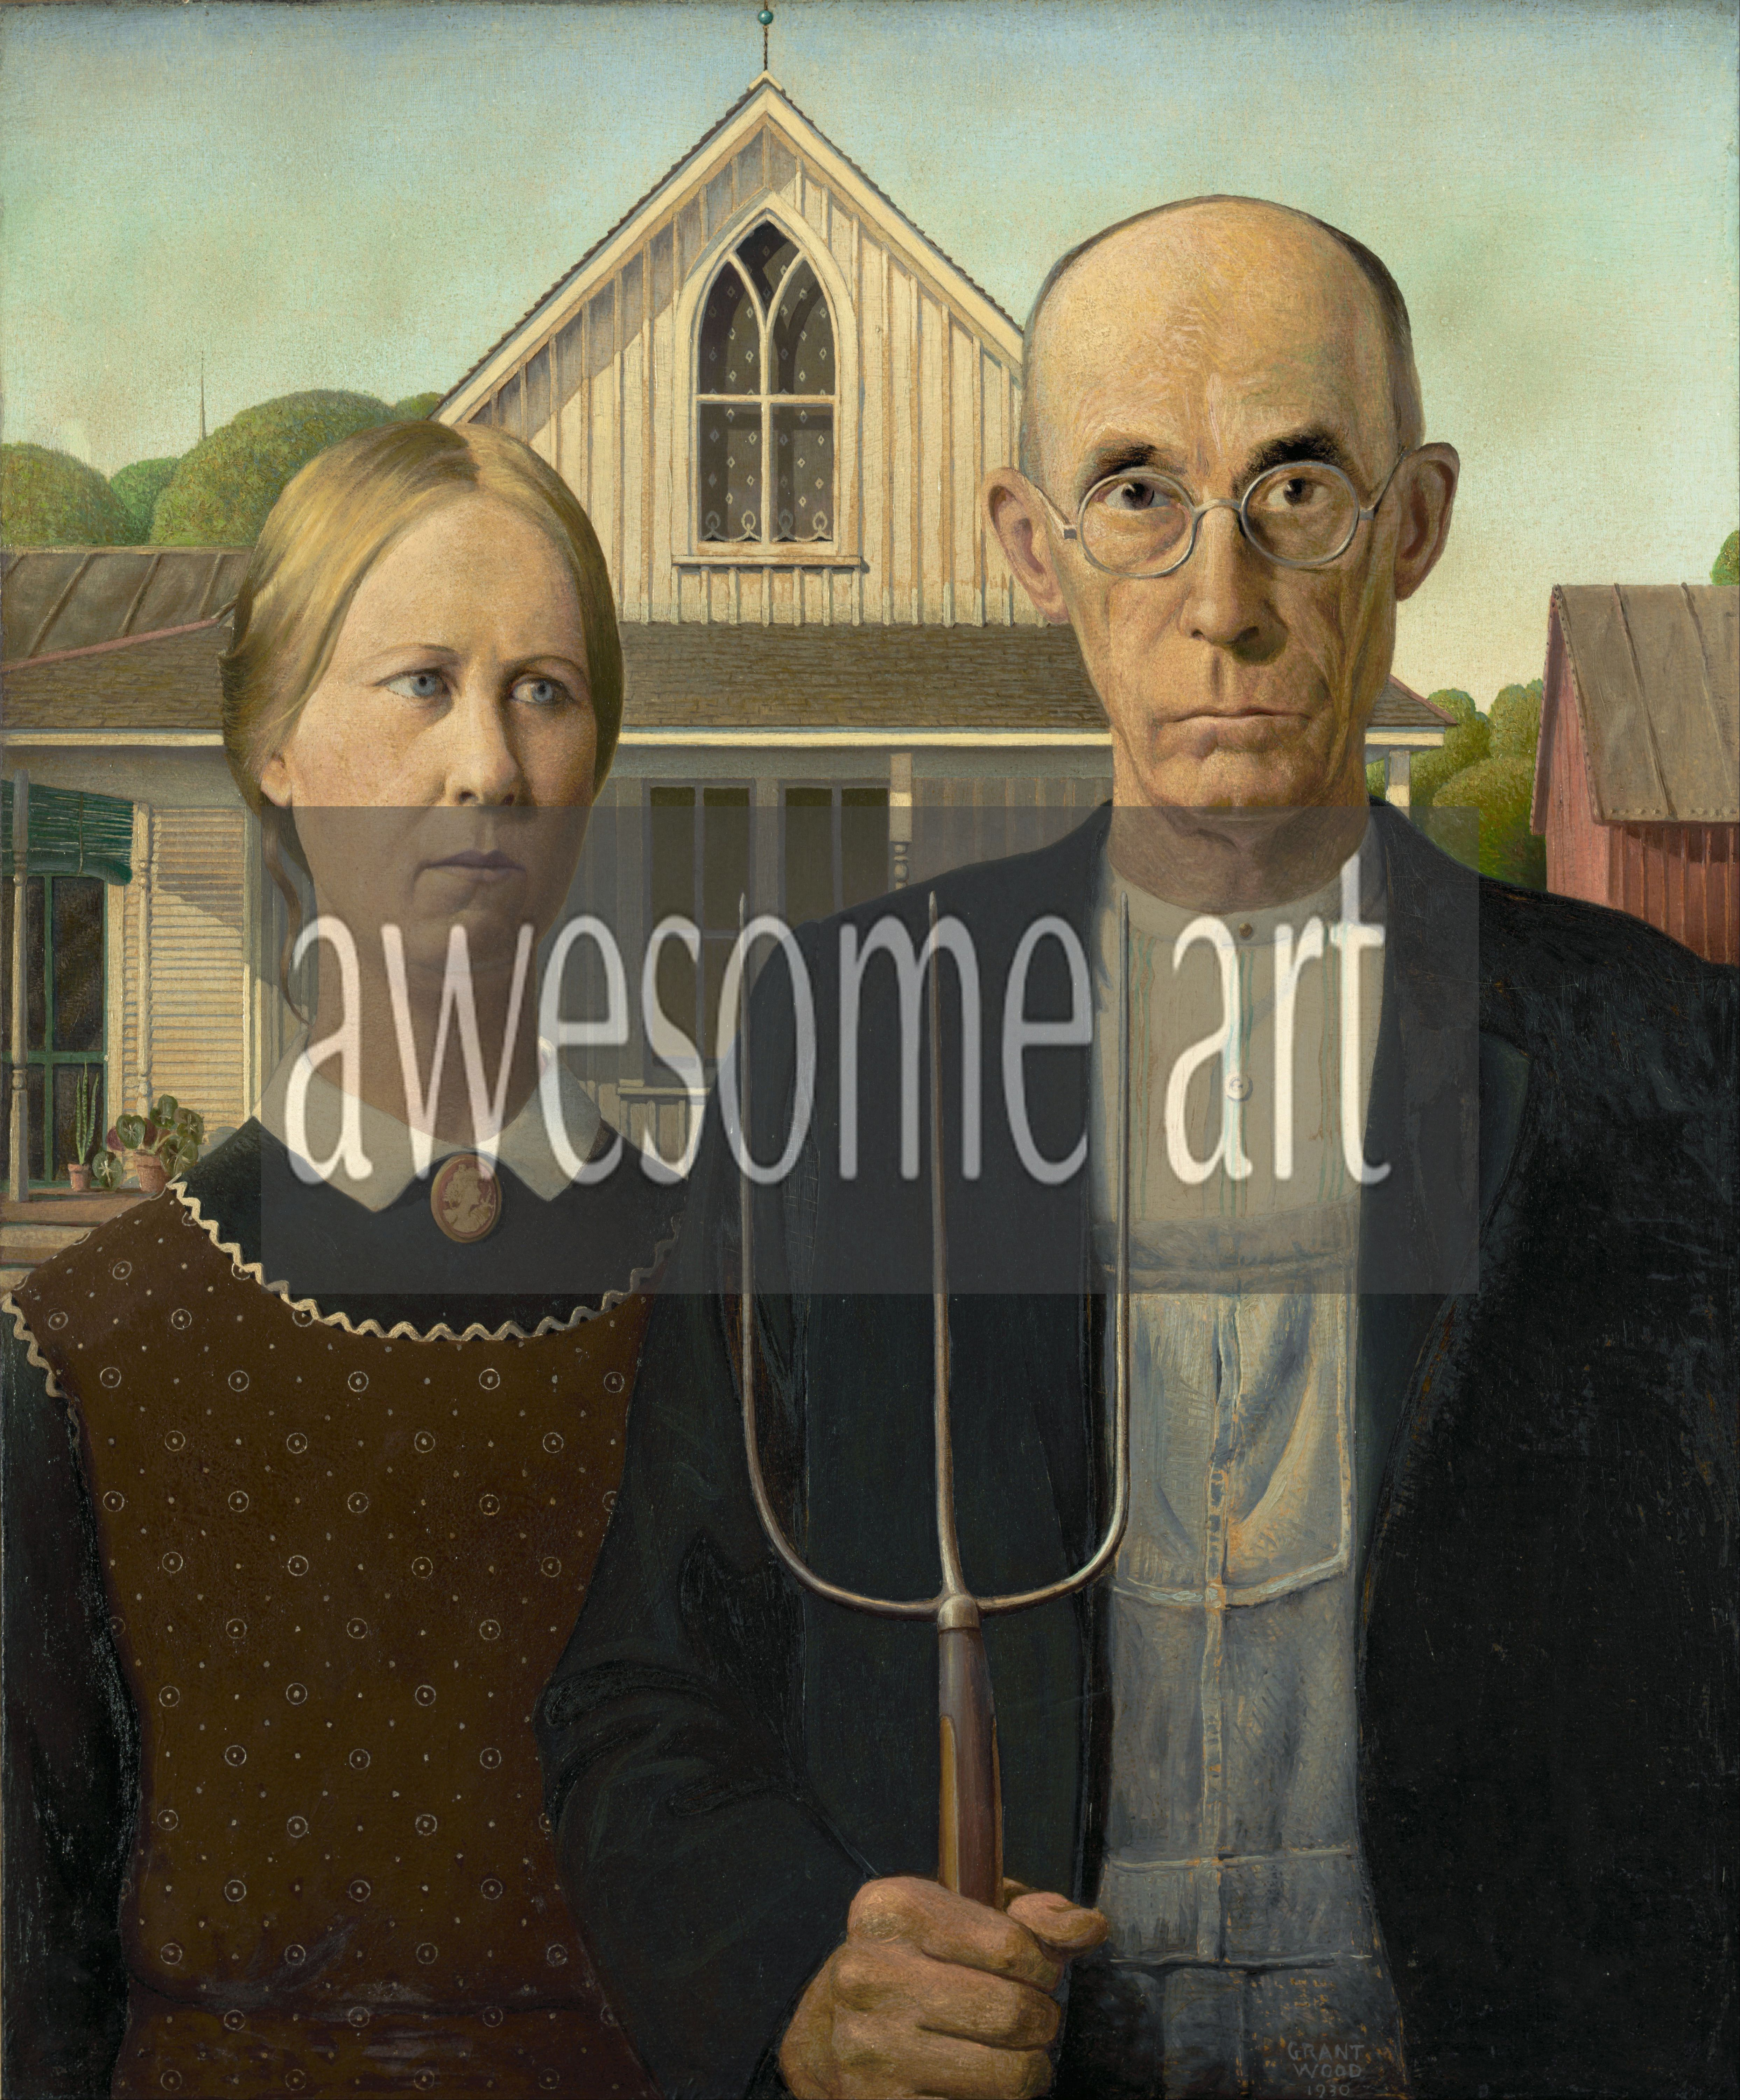 """grant wood and the american gothic Had grant wood not made the painting """"american gothic"""" (1930), there would not be a grant wood retrospective now at the whitney museum this would be a pity."""